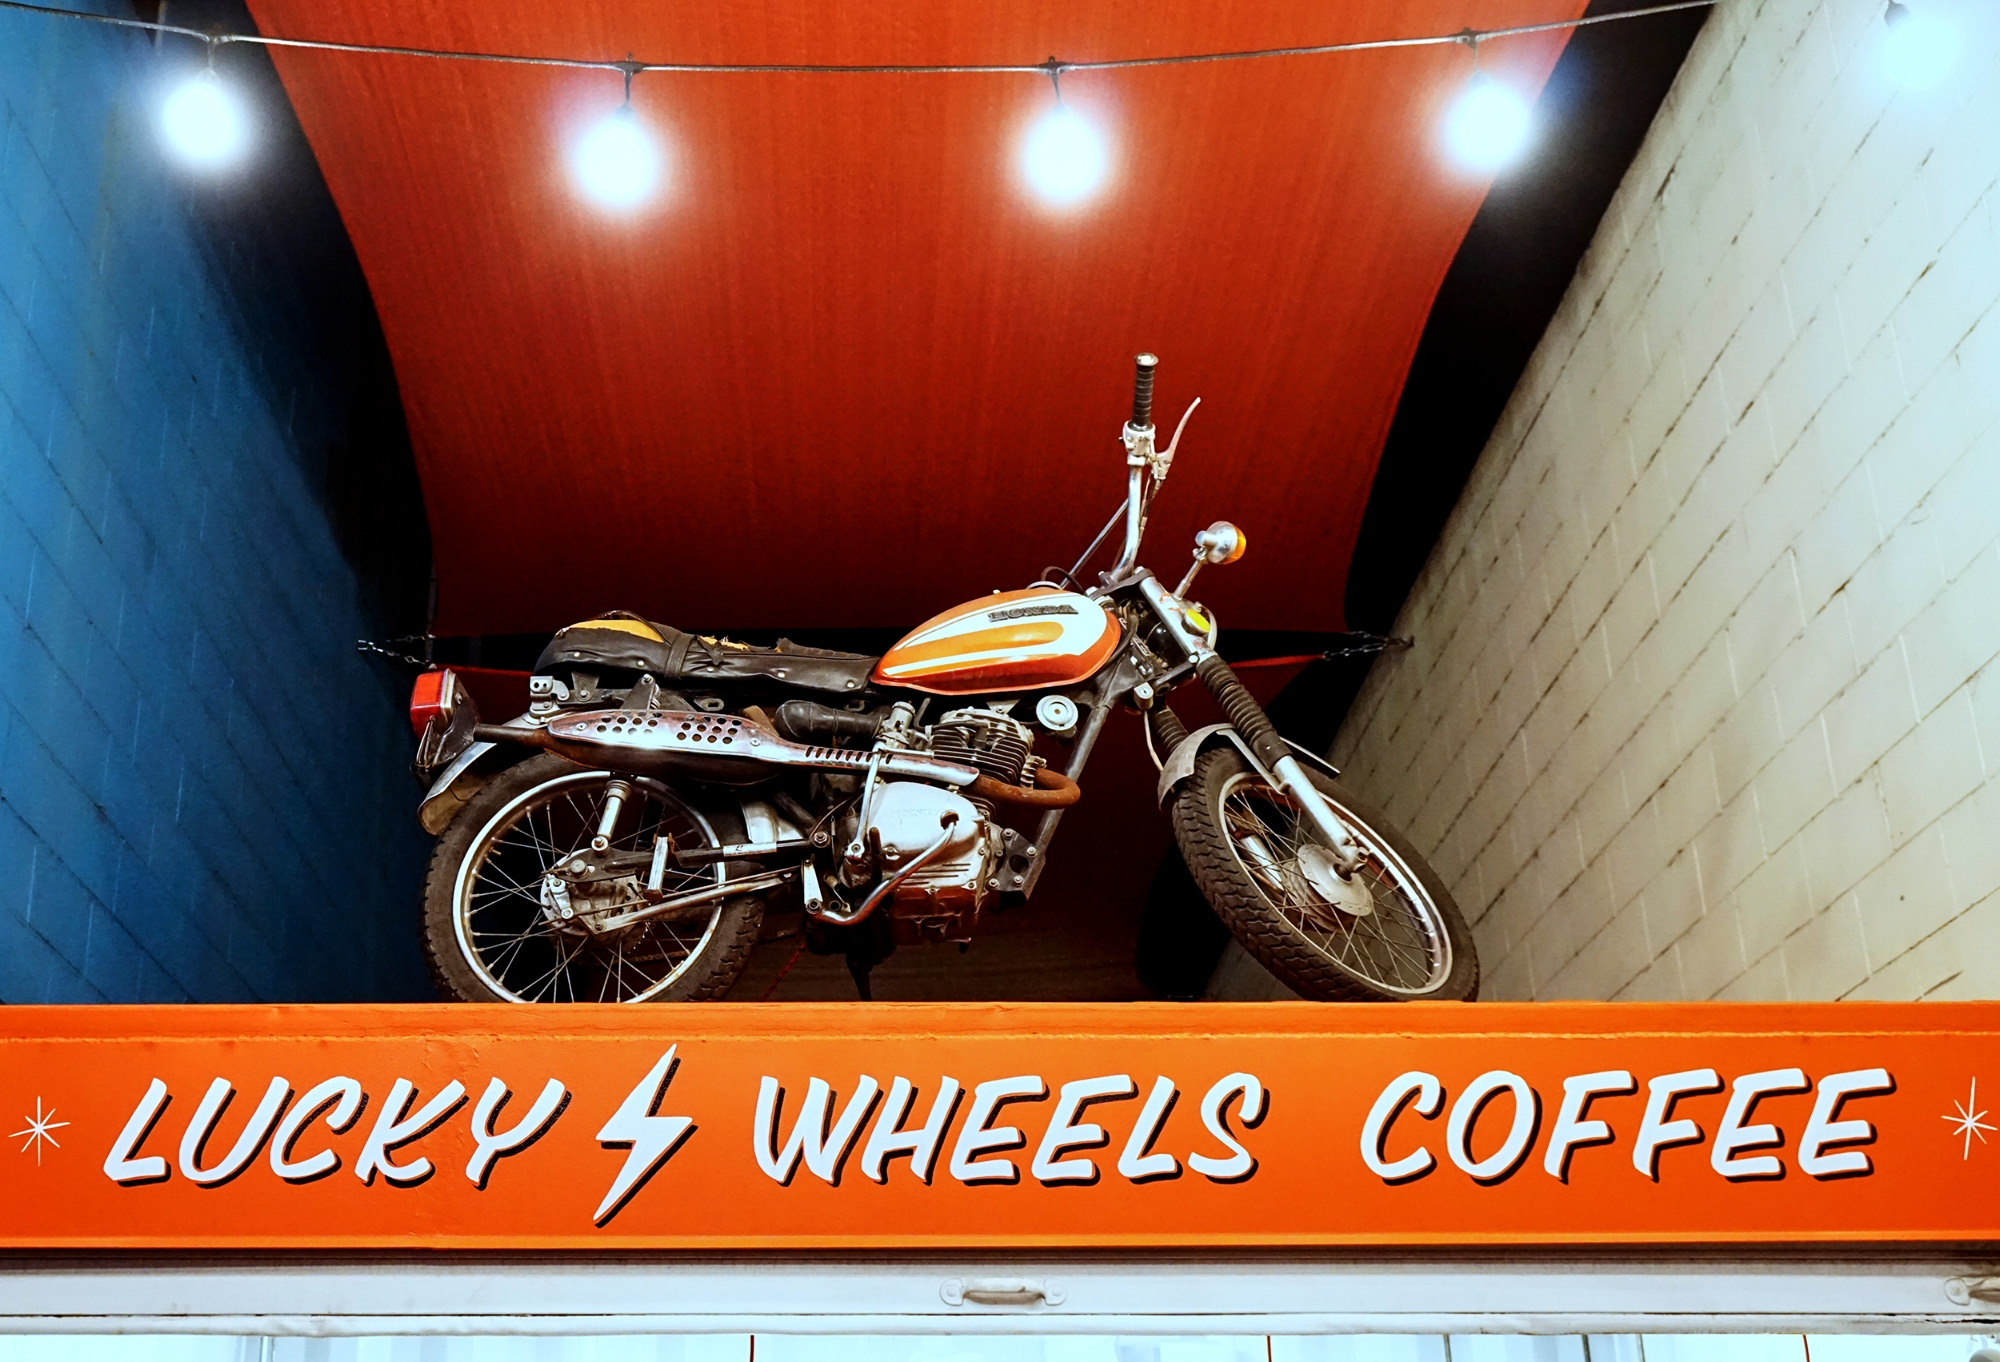 Lucky Wheels Coffee is right next door to the garage.